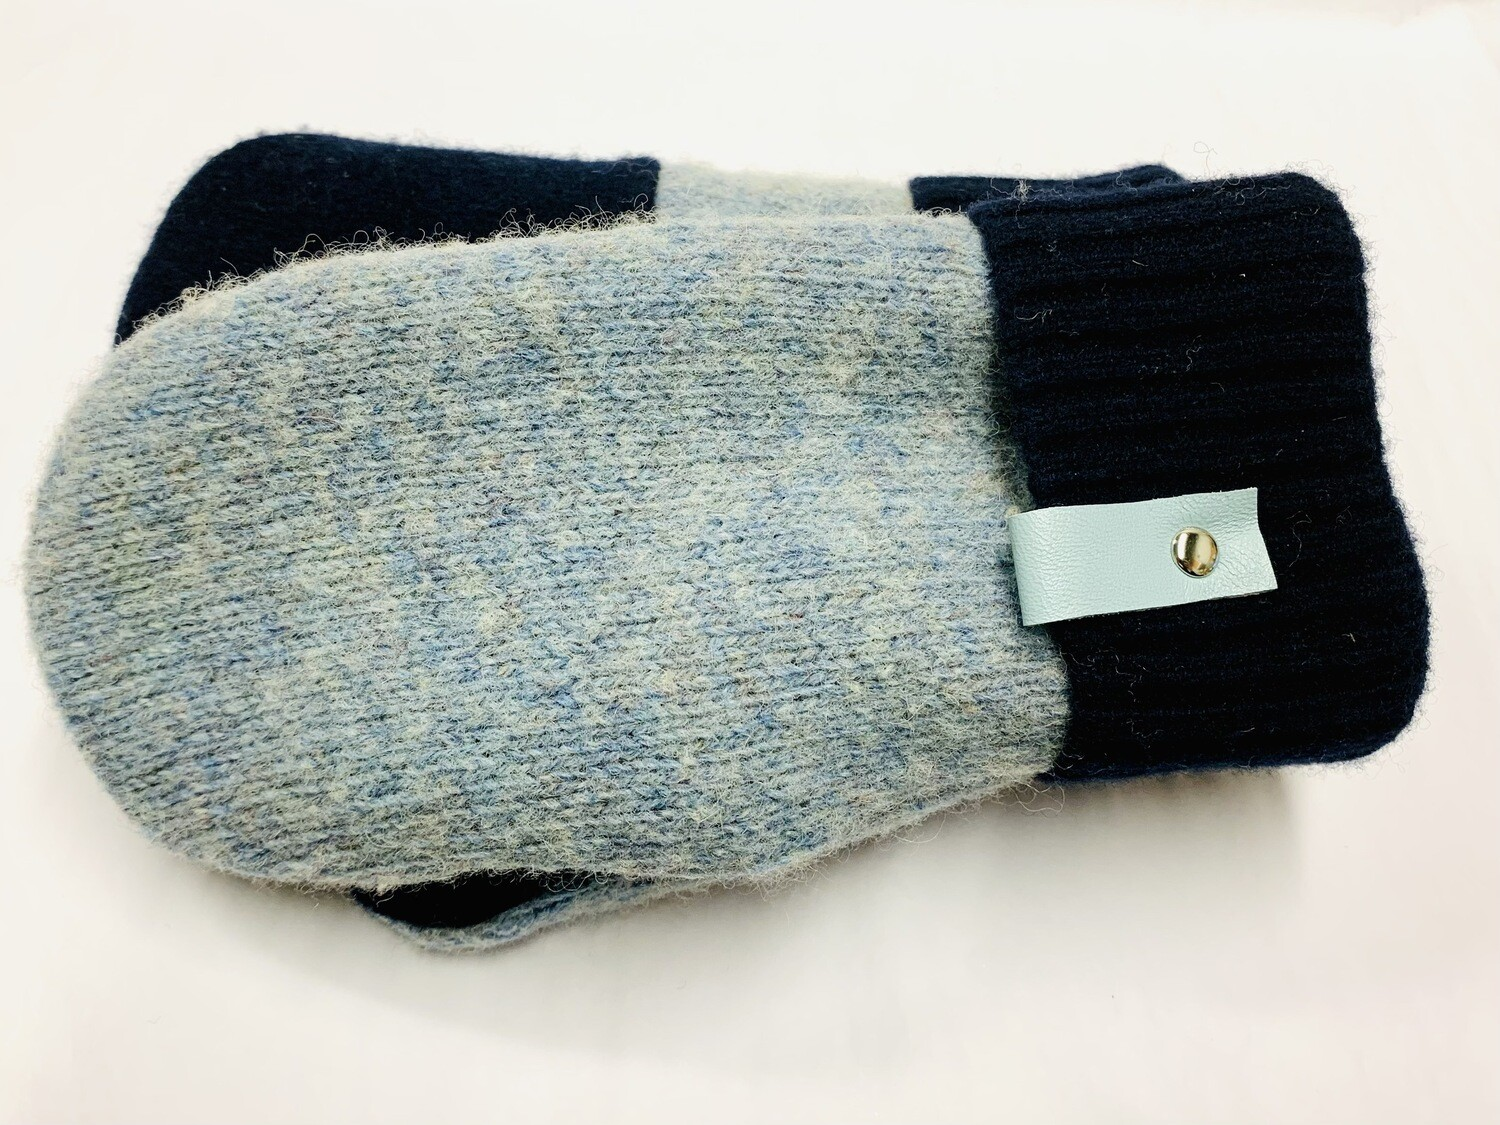 Light Blue, Small - Mary's Mittens